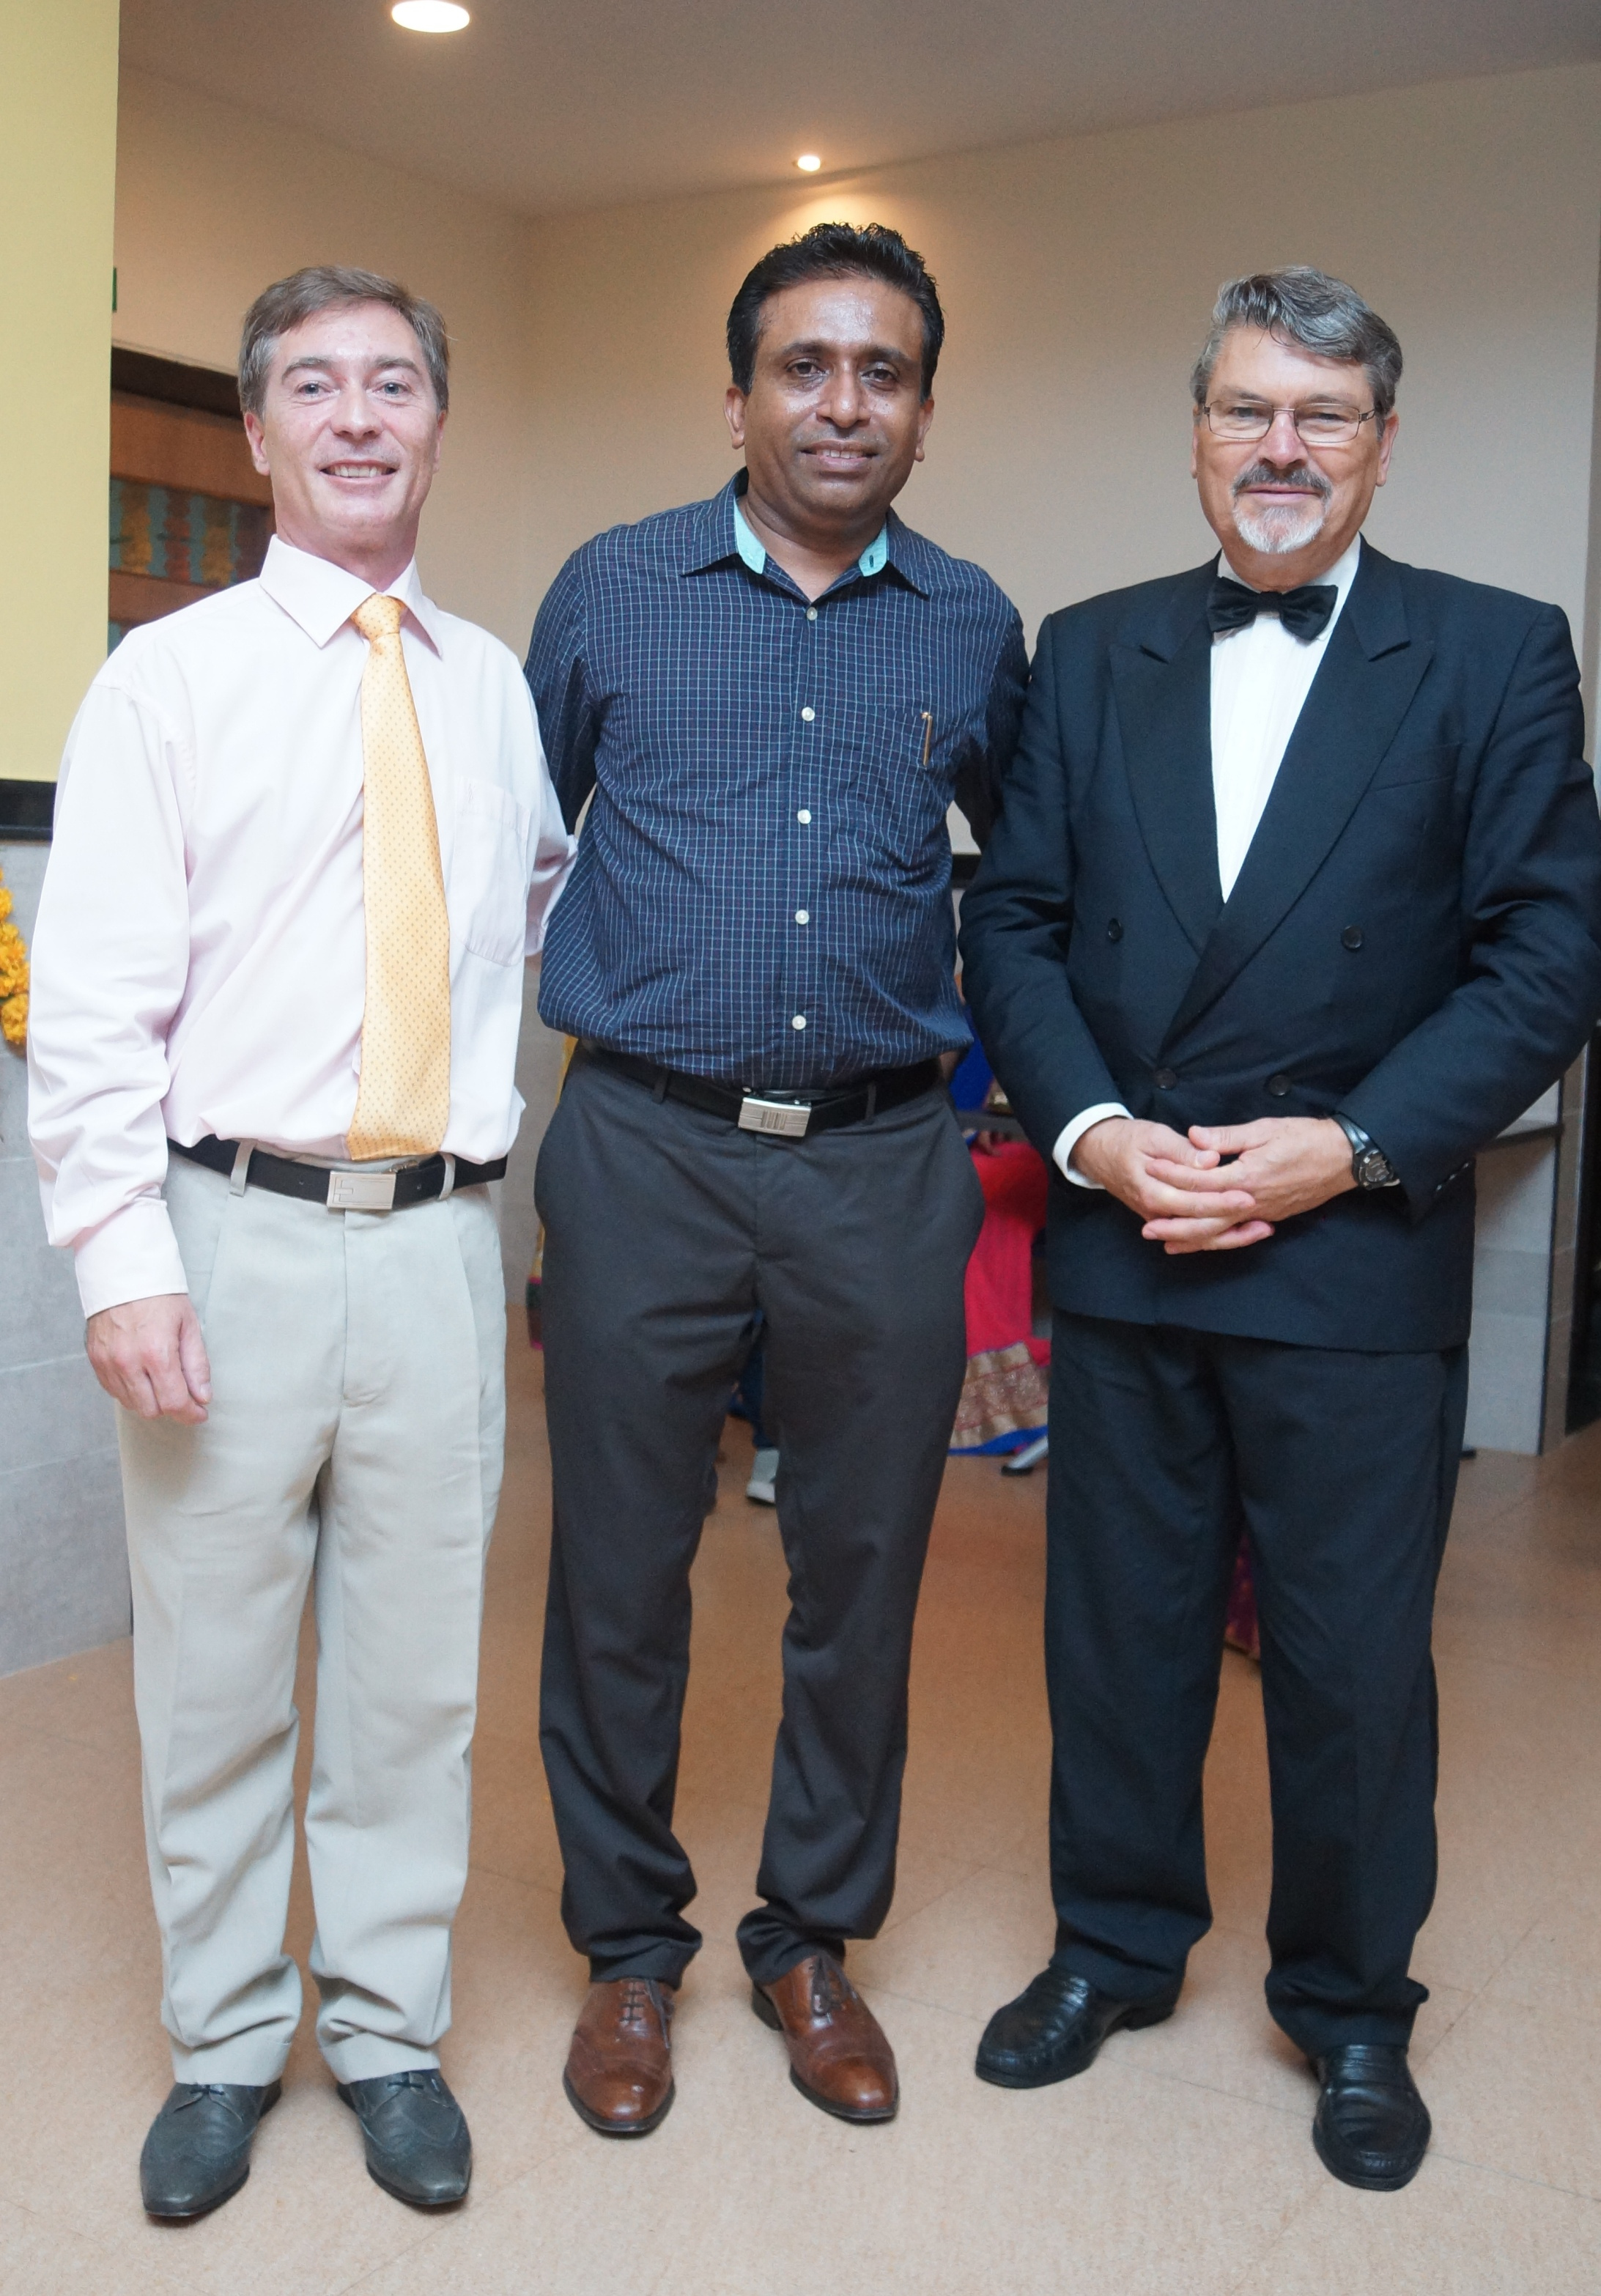 V.M Salgaocar Institute of International Hospitality Education hosts international faculty members Sebastien Semenzi and Georges Ortiz